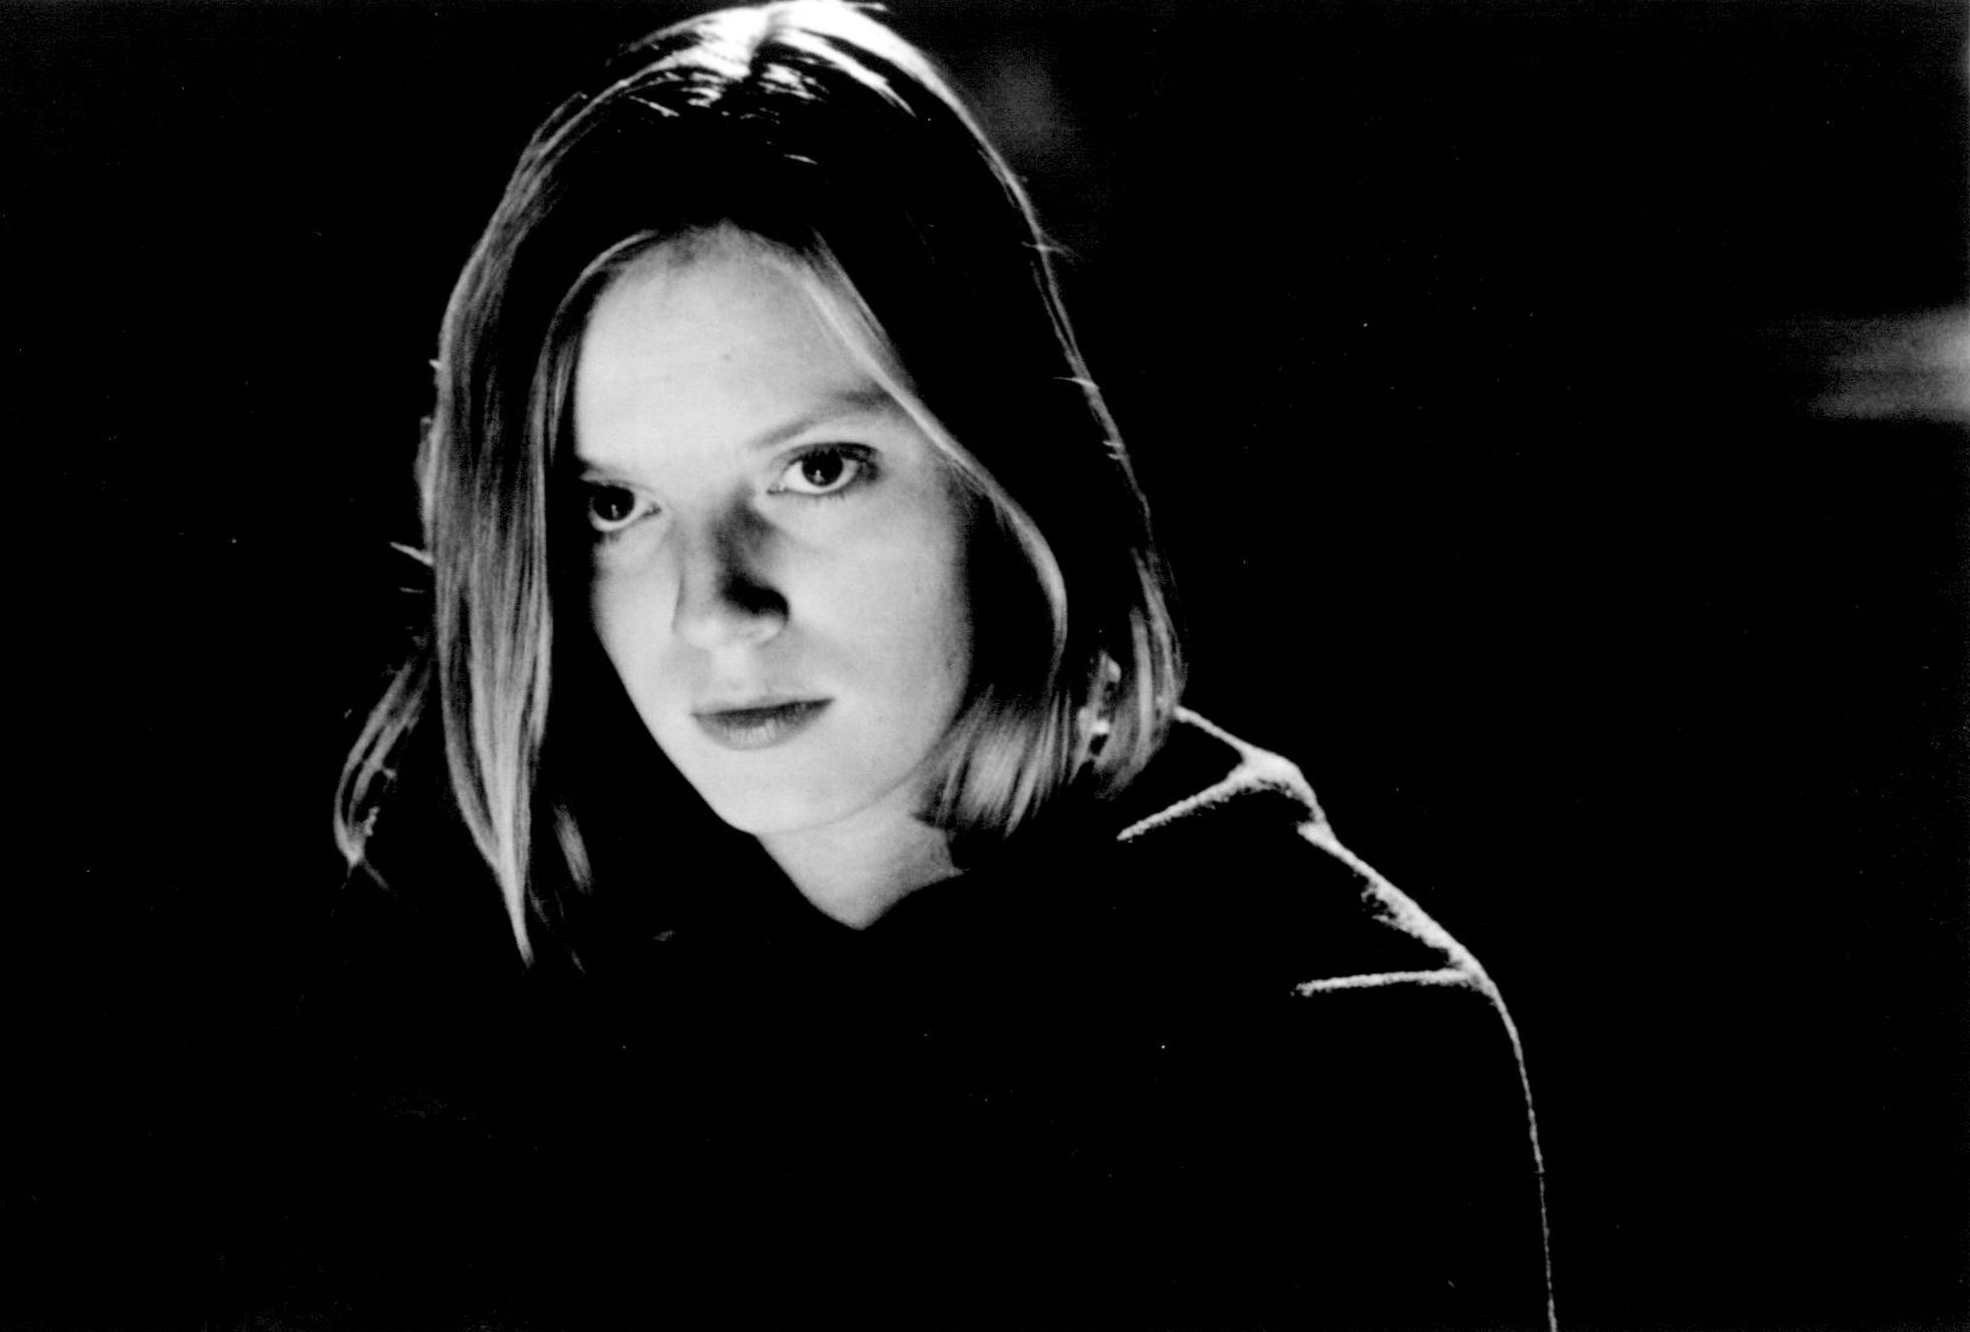 Sarah Polley in 'The Sweet Hereafter,' written and directed by Atom Egoyan, based on the novel by Russell Banks.